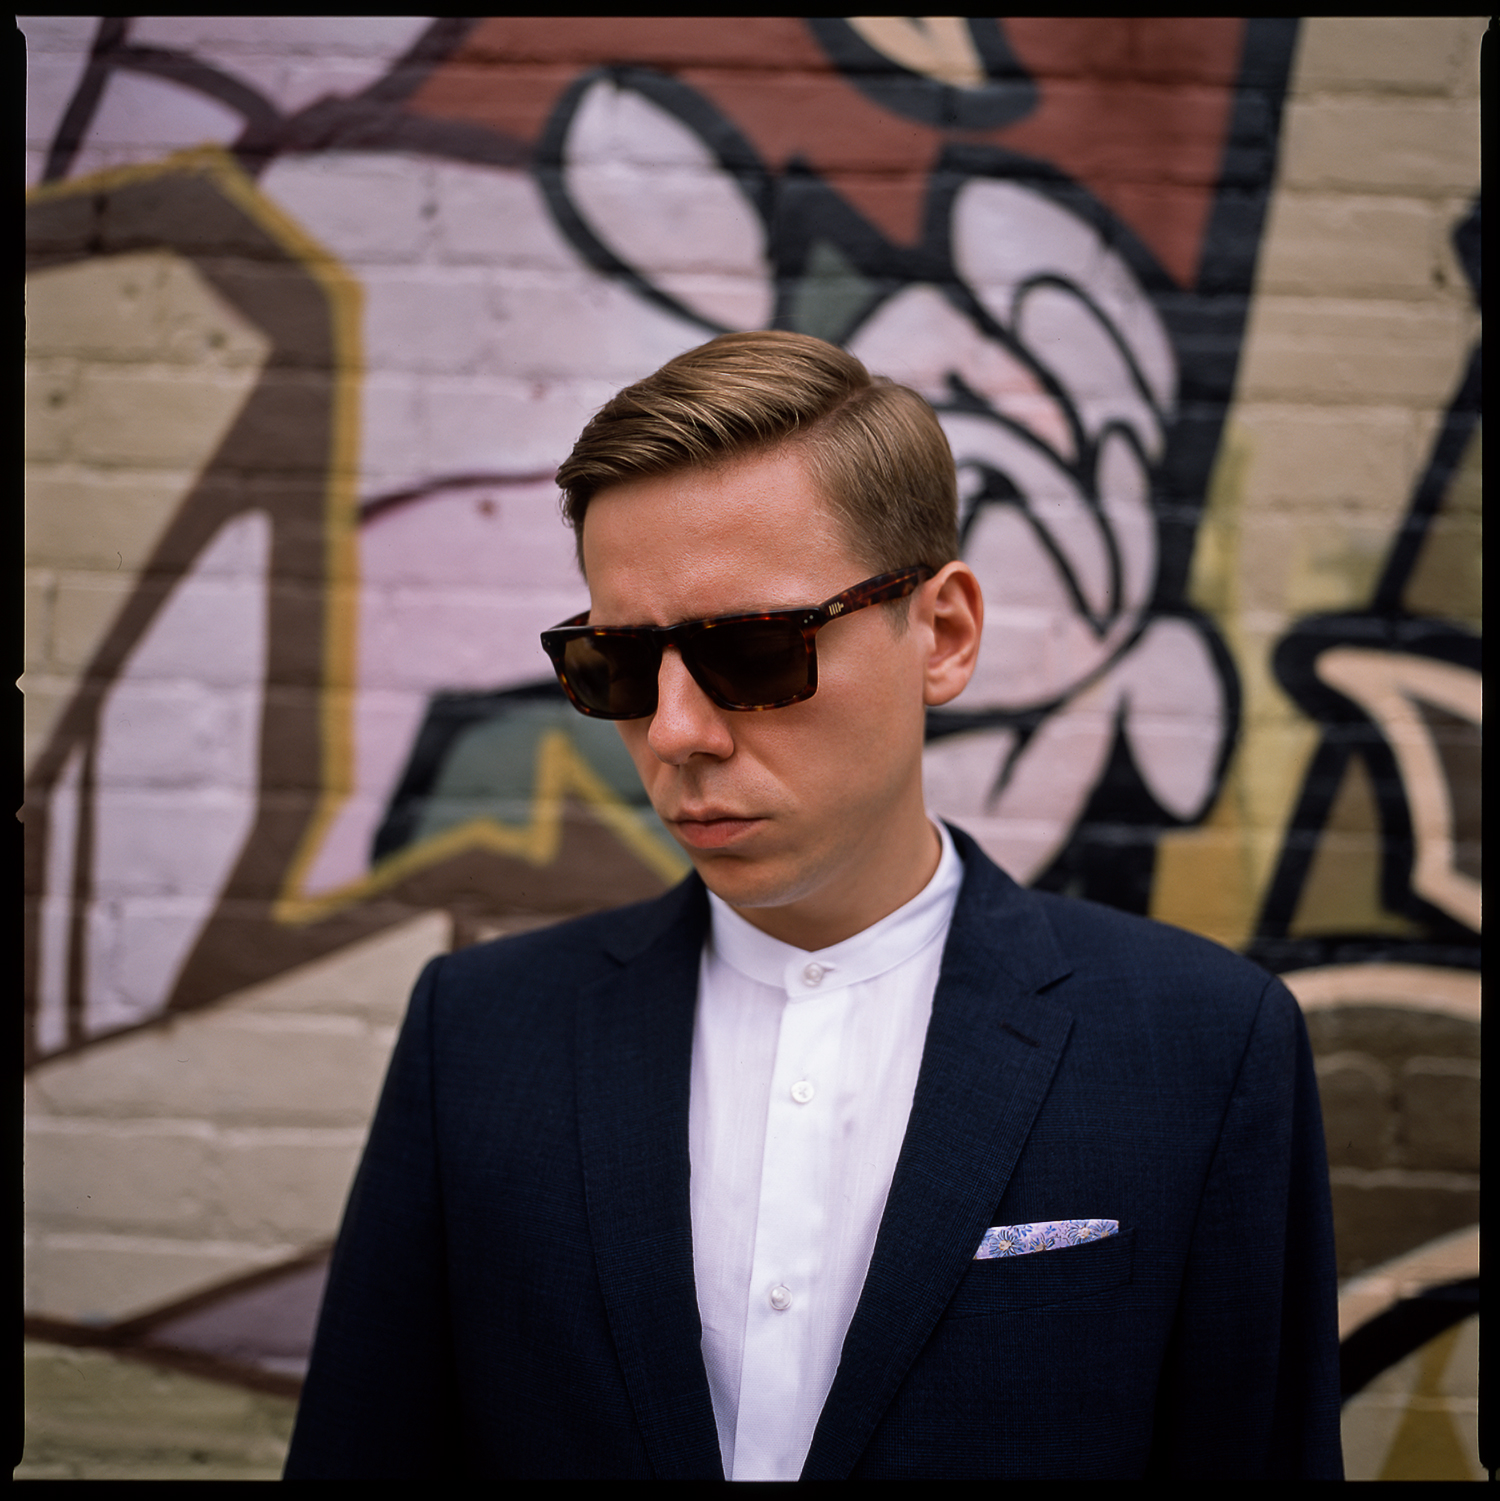 trendy-loversland-Groom-wearing-slim-fitted-suit-with-no-tie-kensington-Market-Bridal-portraits-Analog-Film-Best-Wedding-Photographers-Toronto.jpg